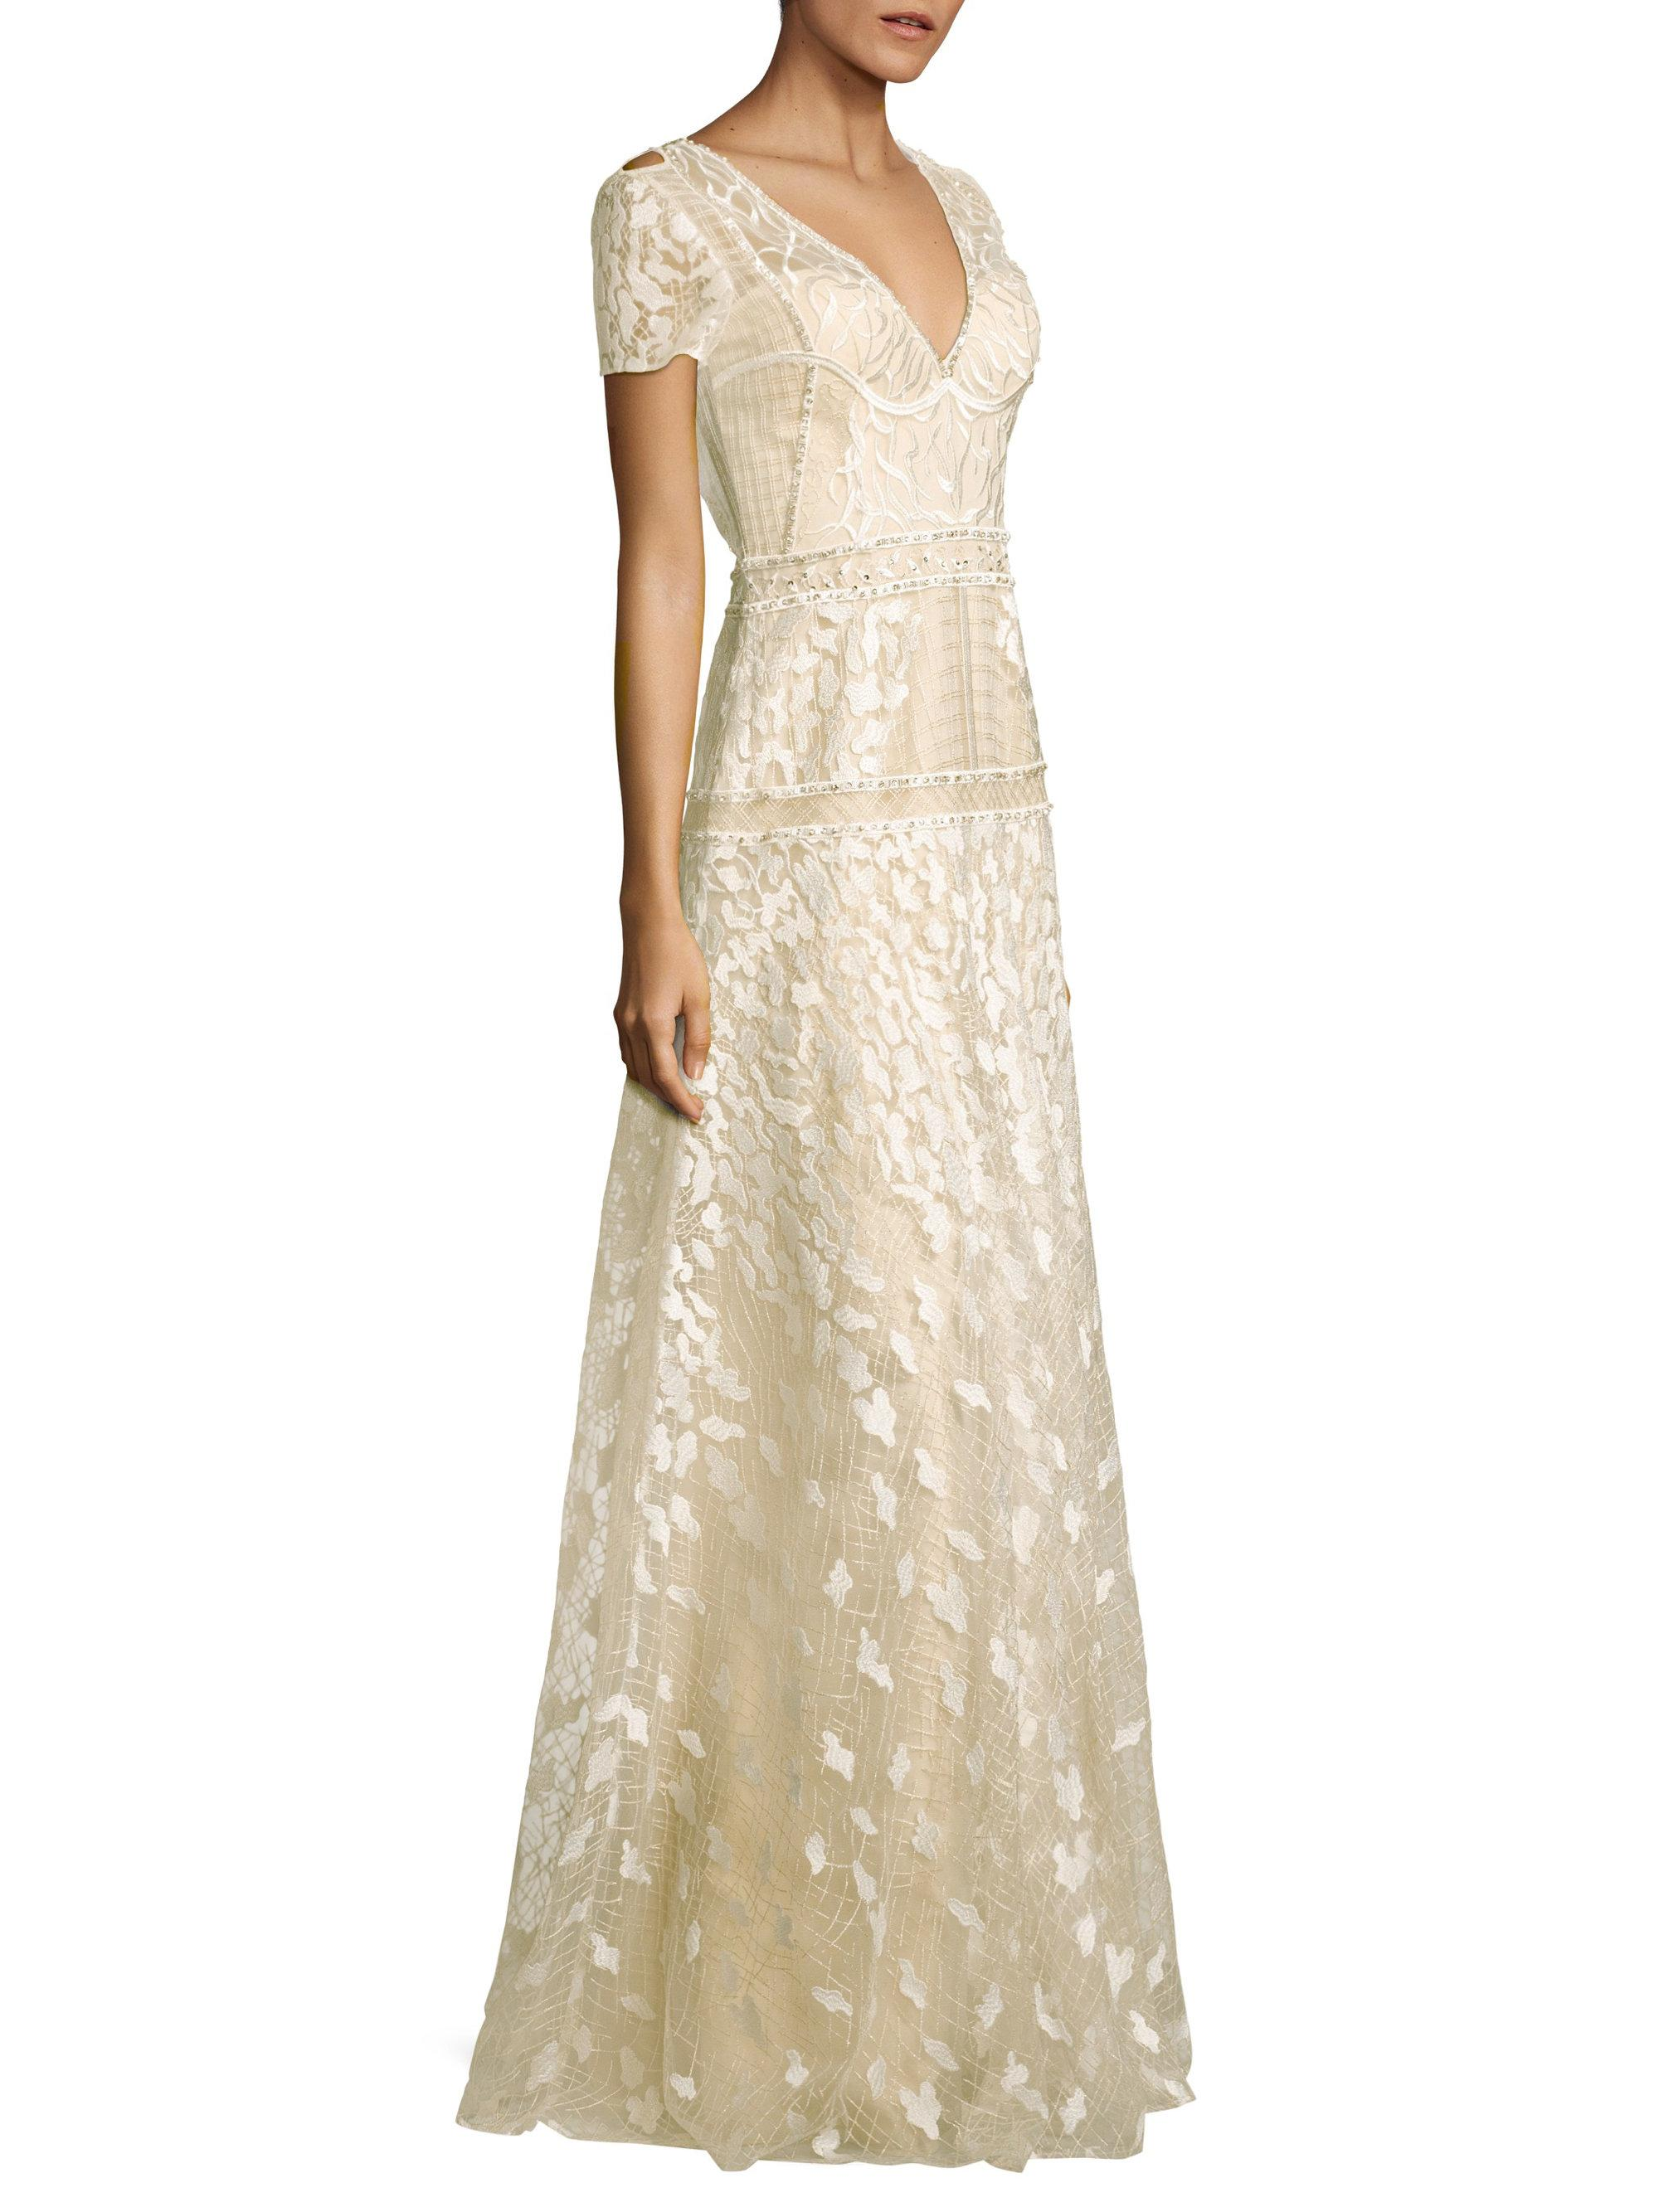 Basix Black Label. Women's White Danah Embroidered Gown